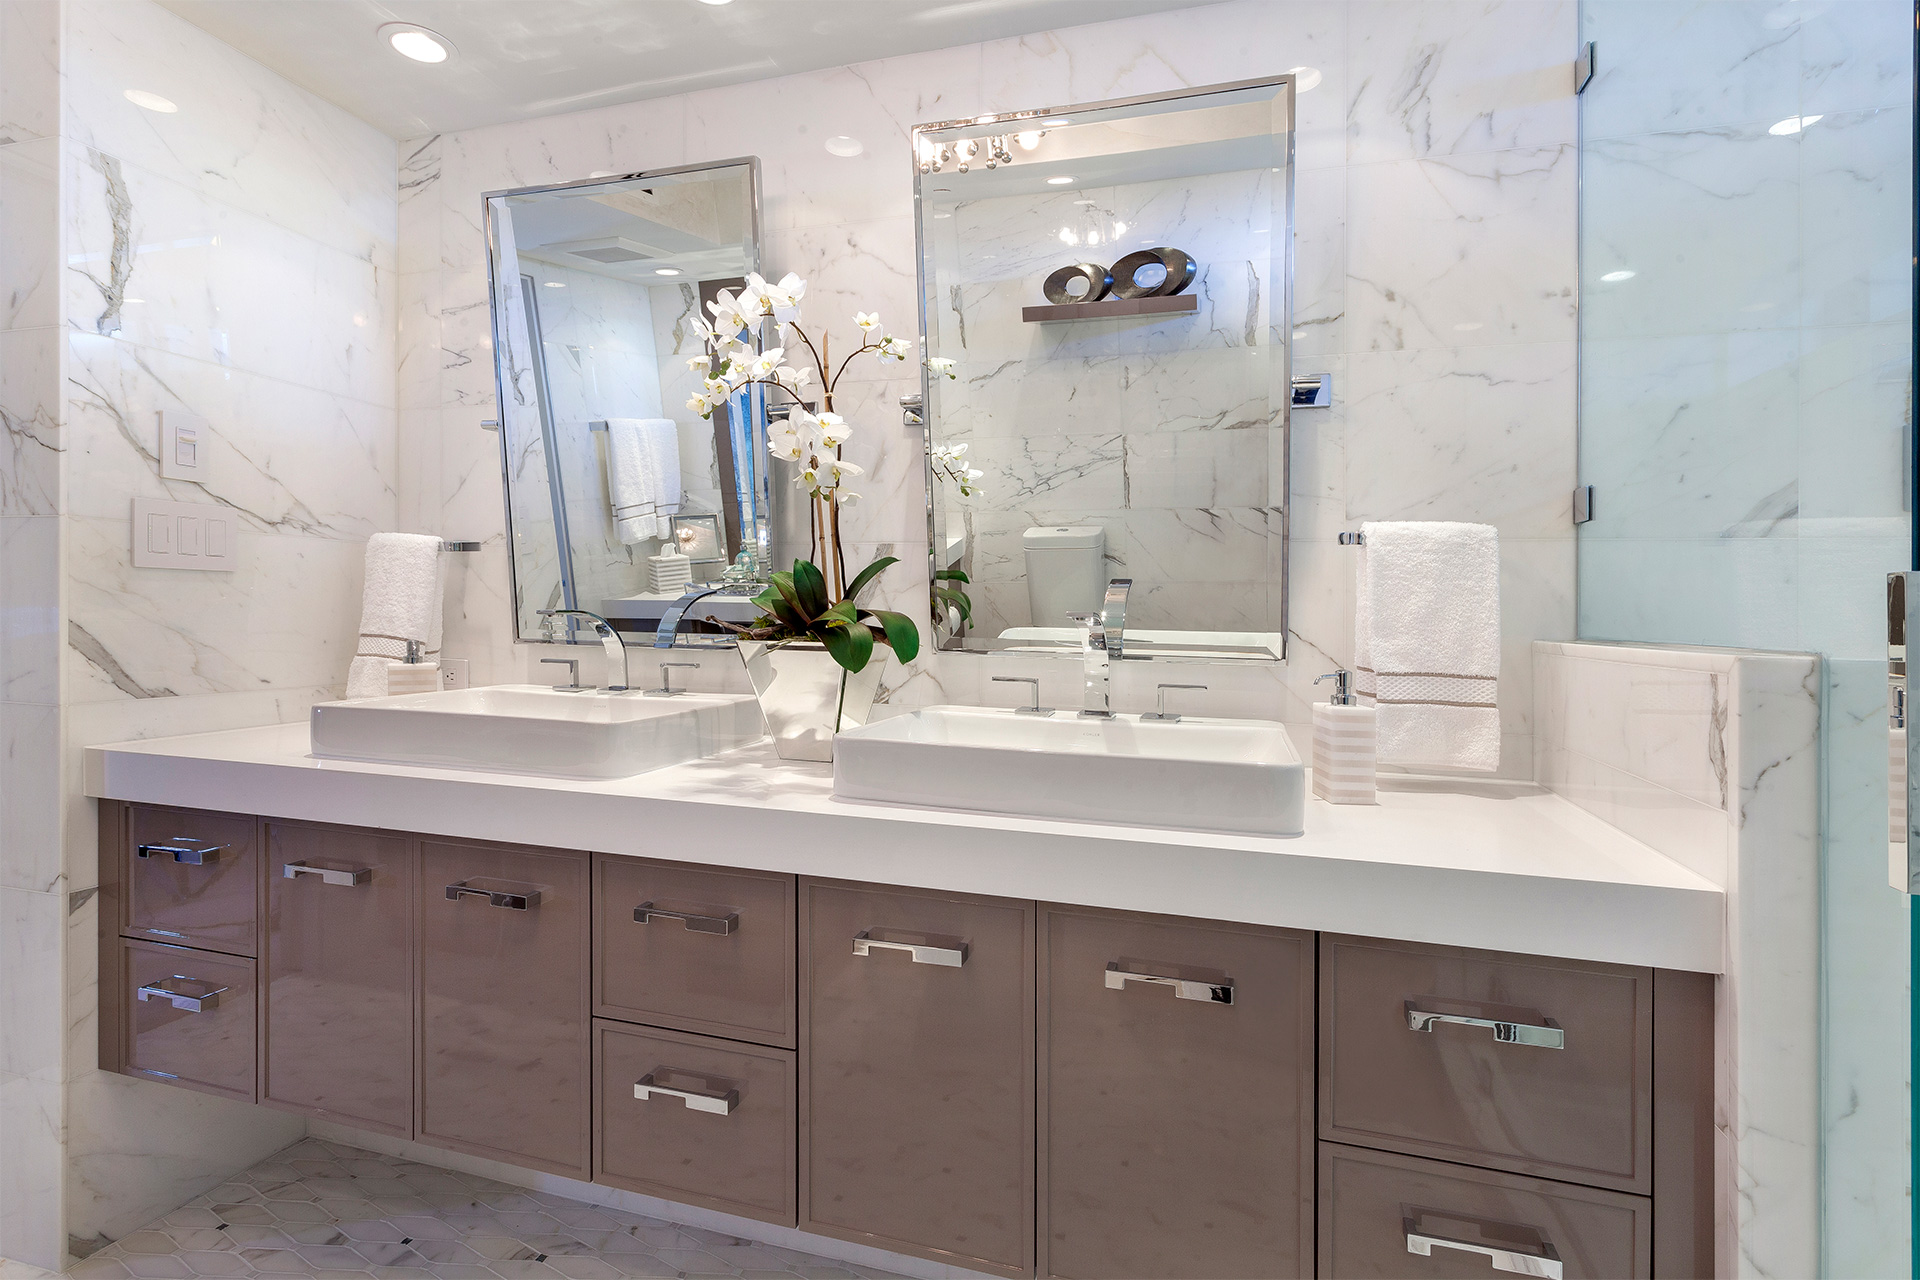 Ocean Boulevard West Palm Beach The Place For Kitchens And Baths